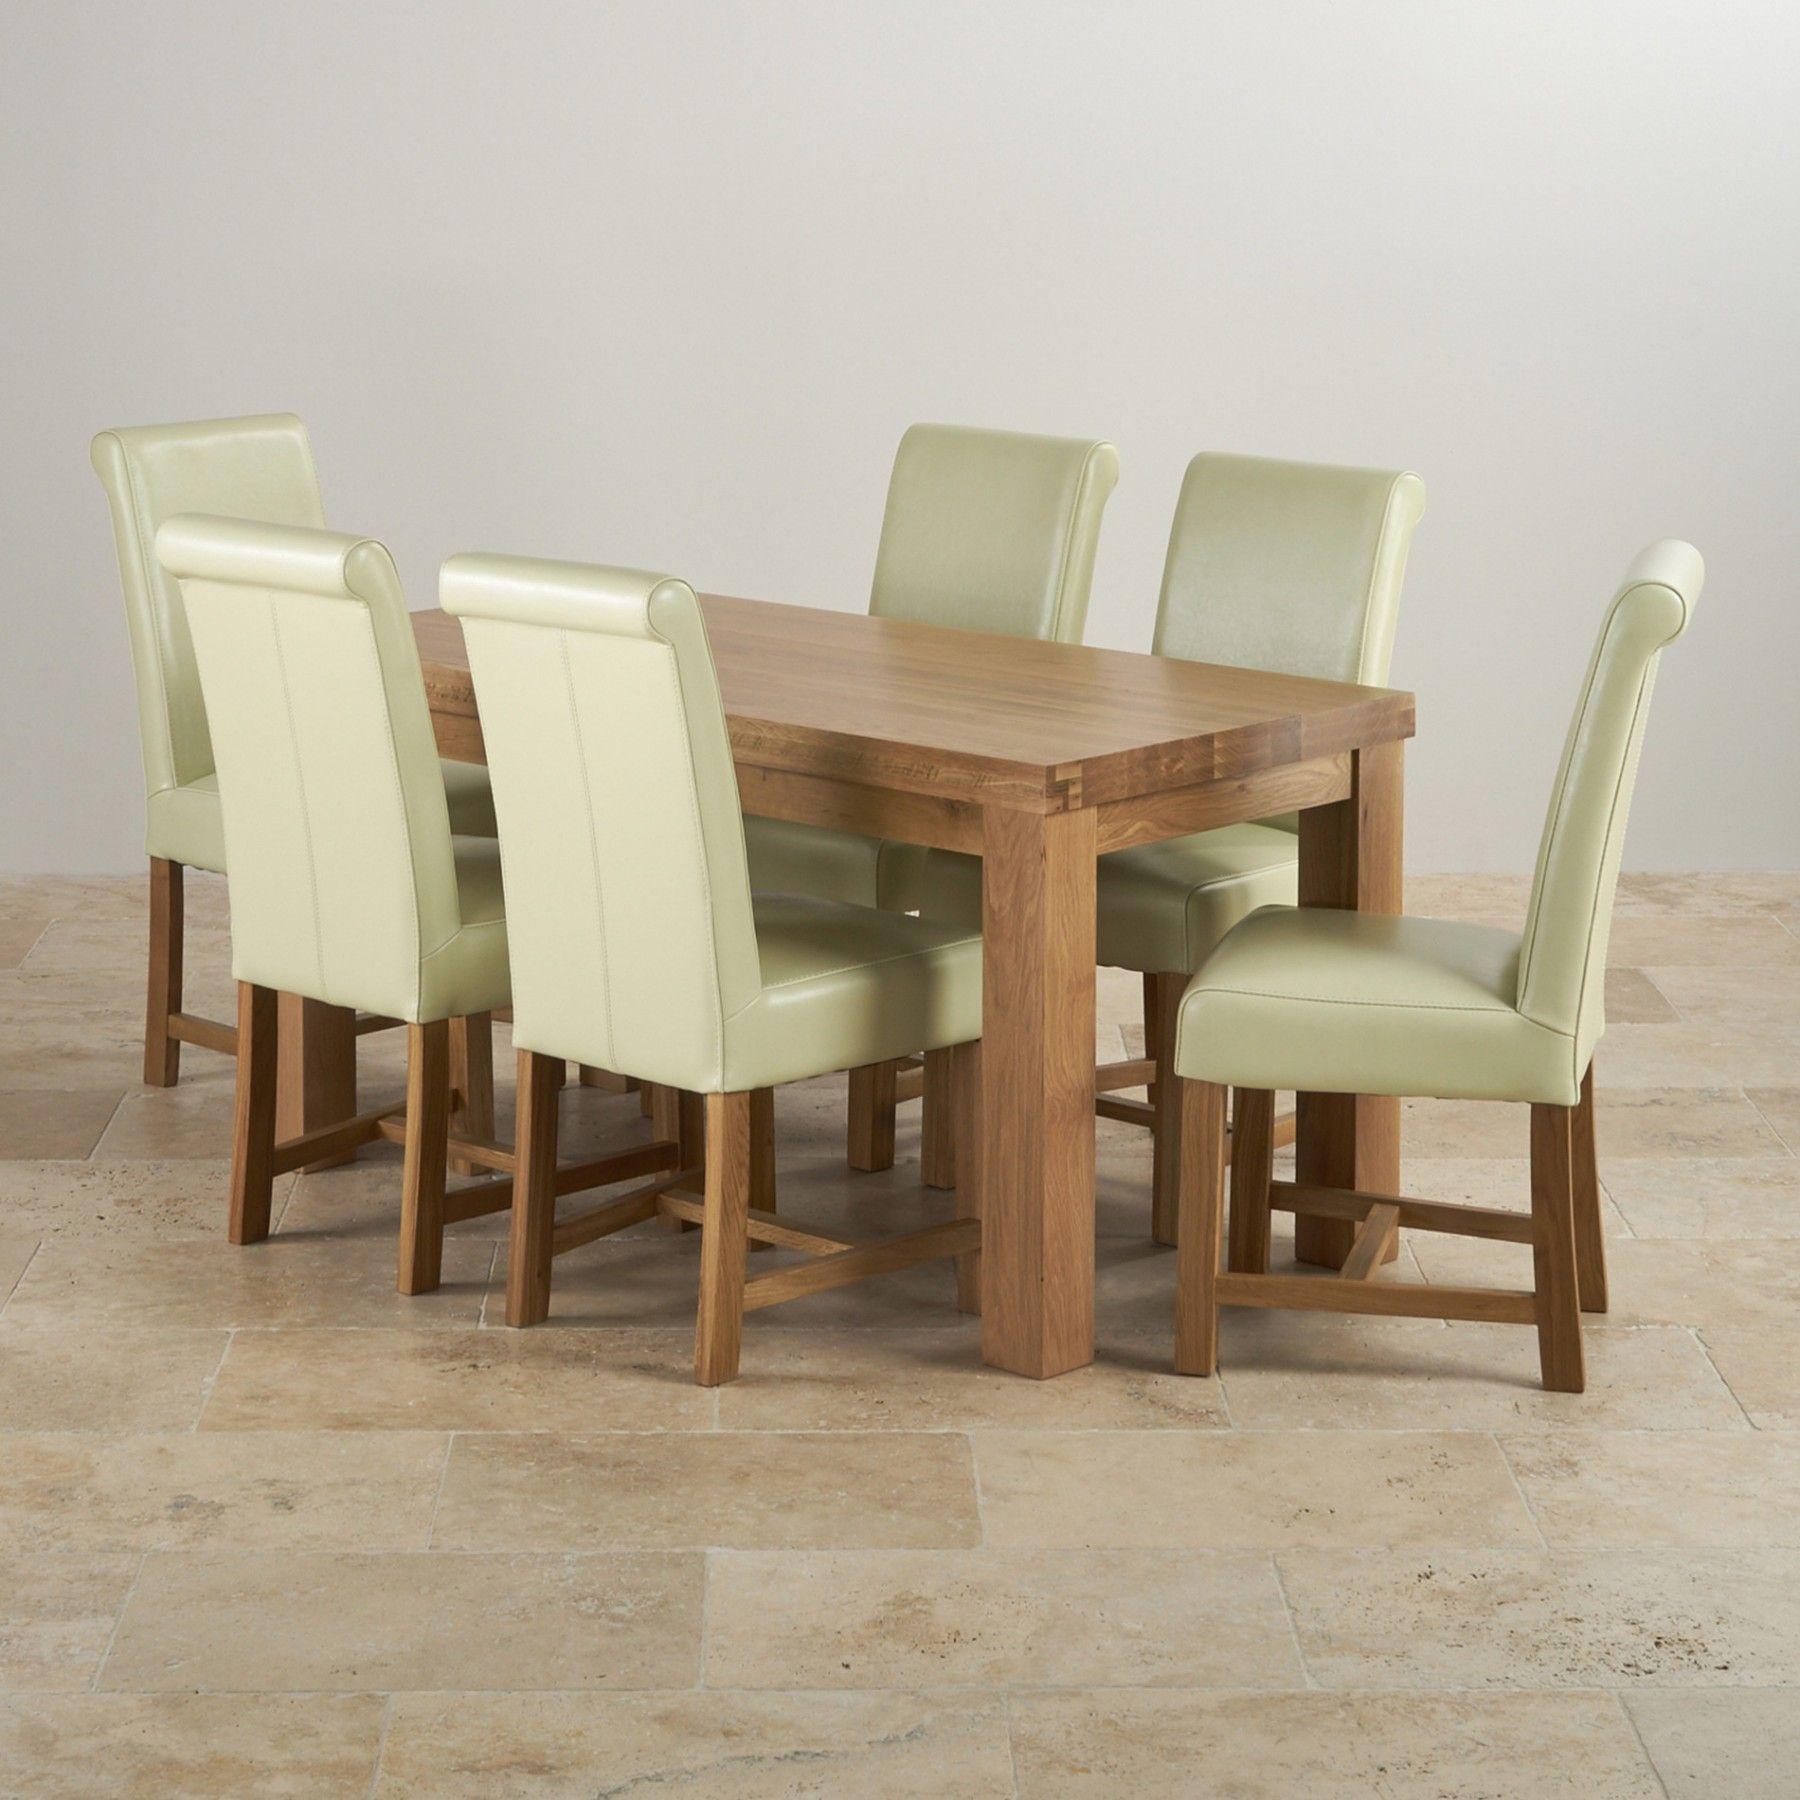 This modern dining set consists of a chunky 5ft dining table and 6 this modern dining set consists of a chunky 5ft dining table and 6 scroll back cream watchthetrailerfo